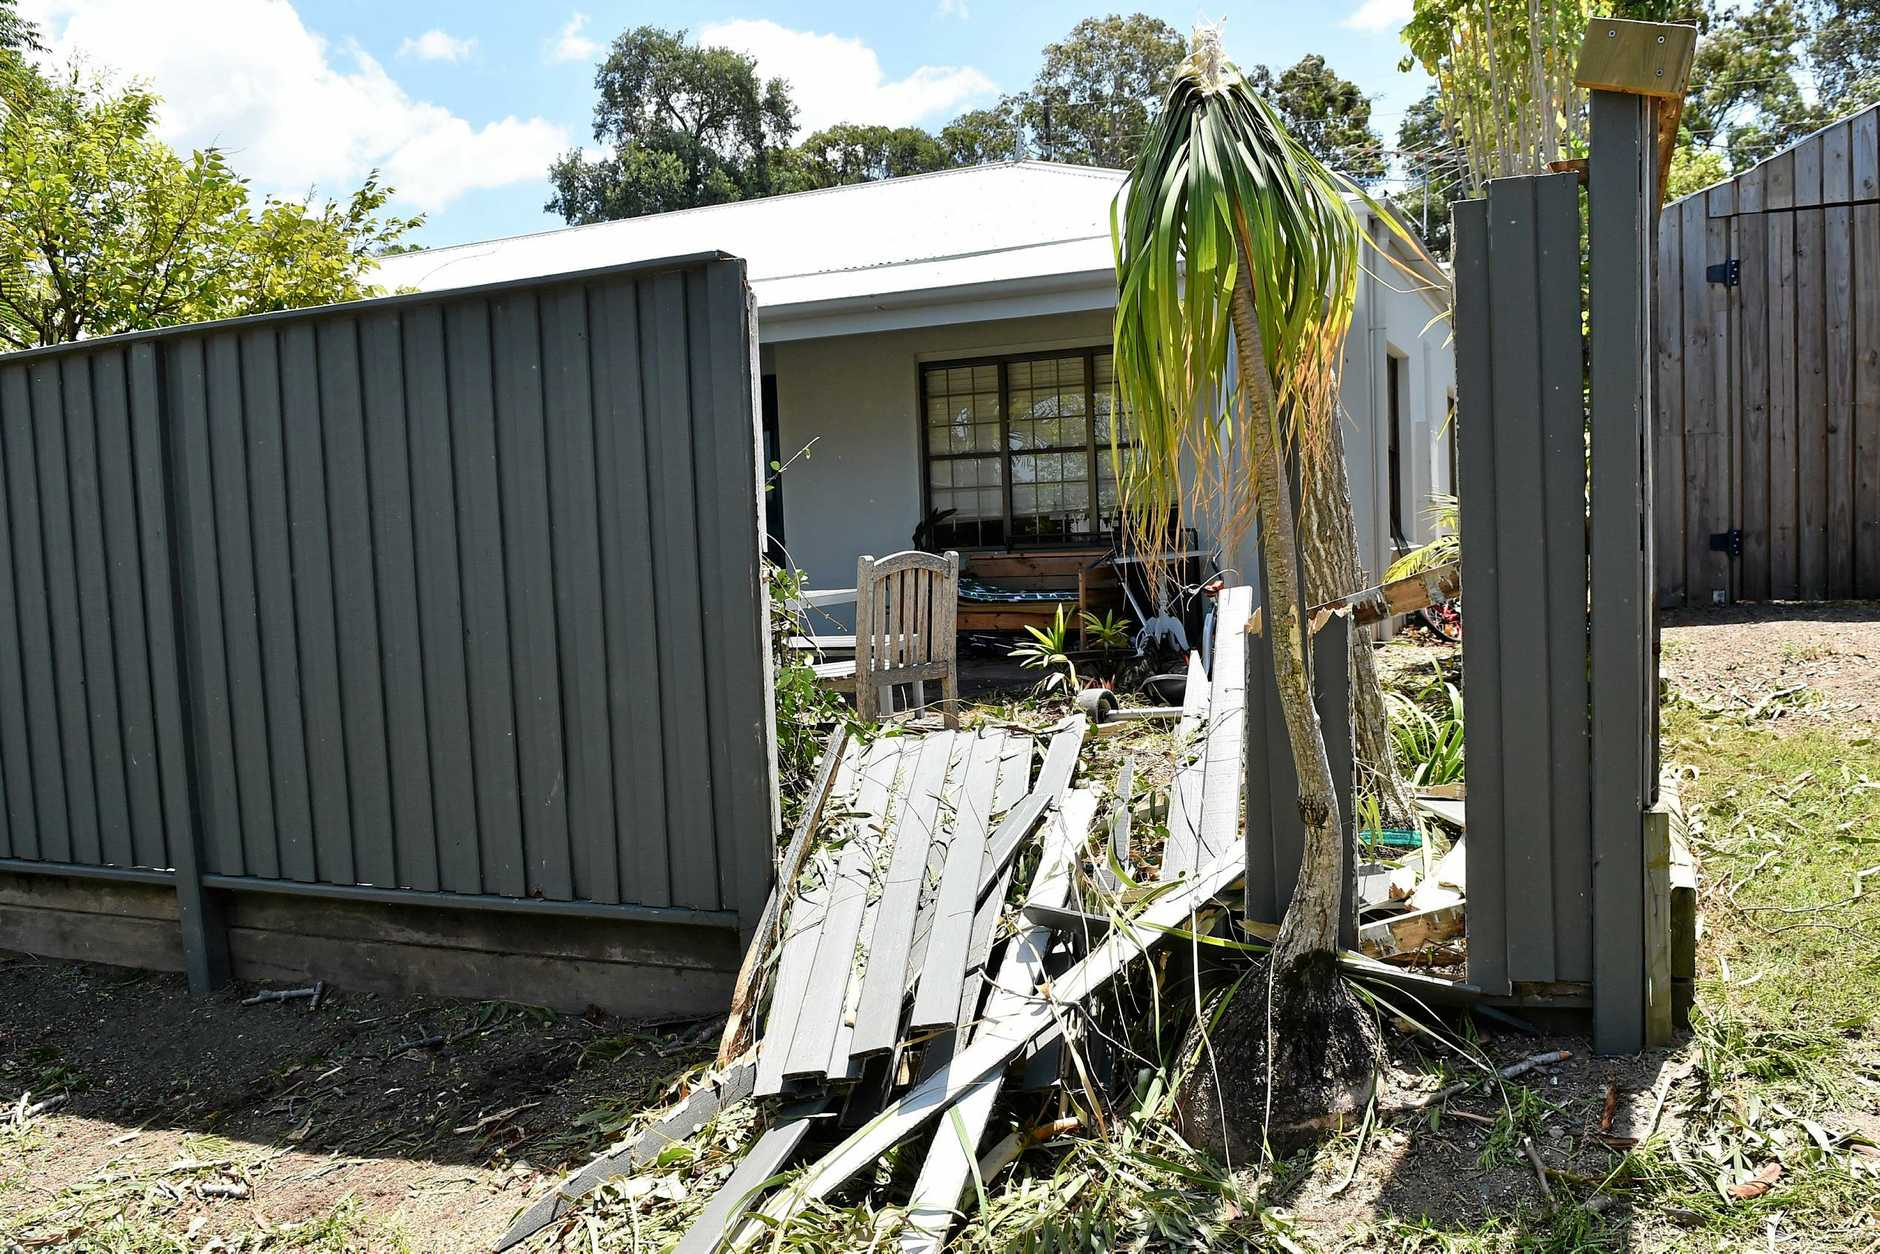 Mr Houk says he's been left responsible with the damage the gum tree caused to his property.